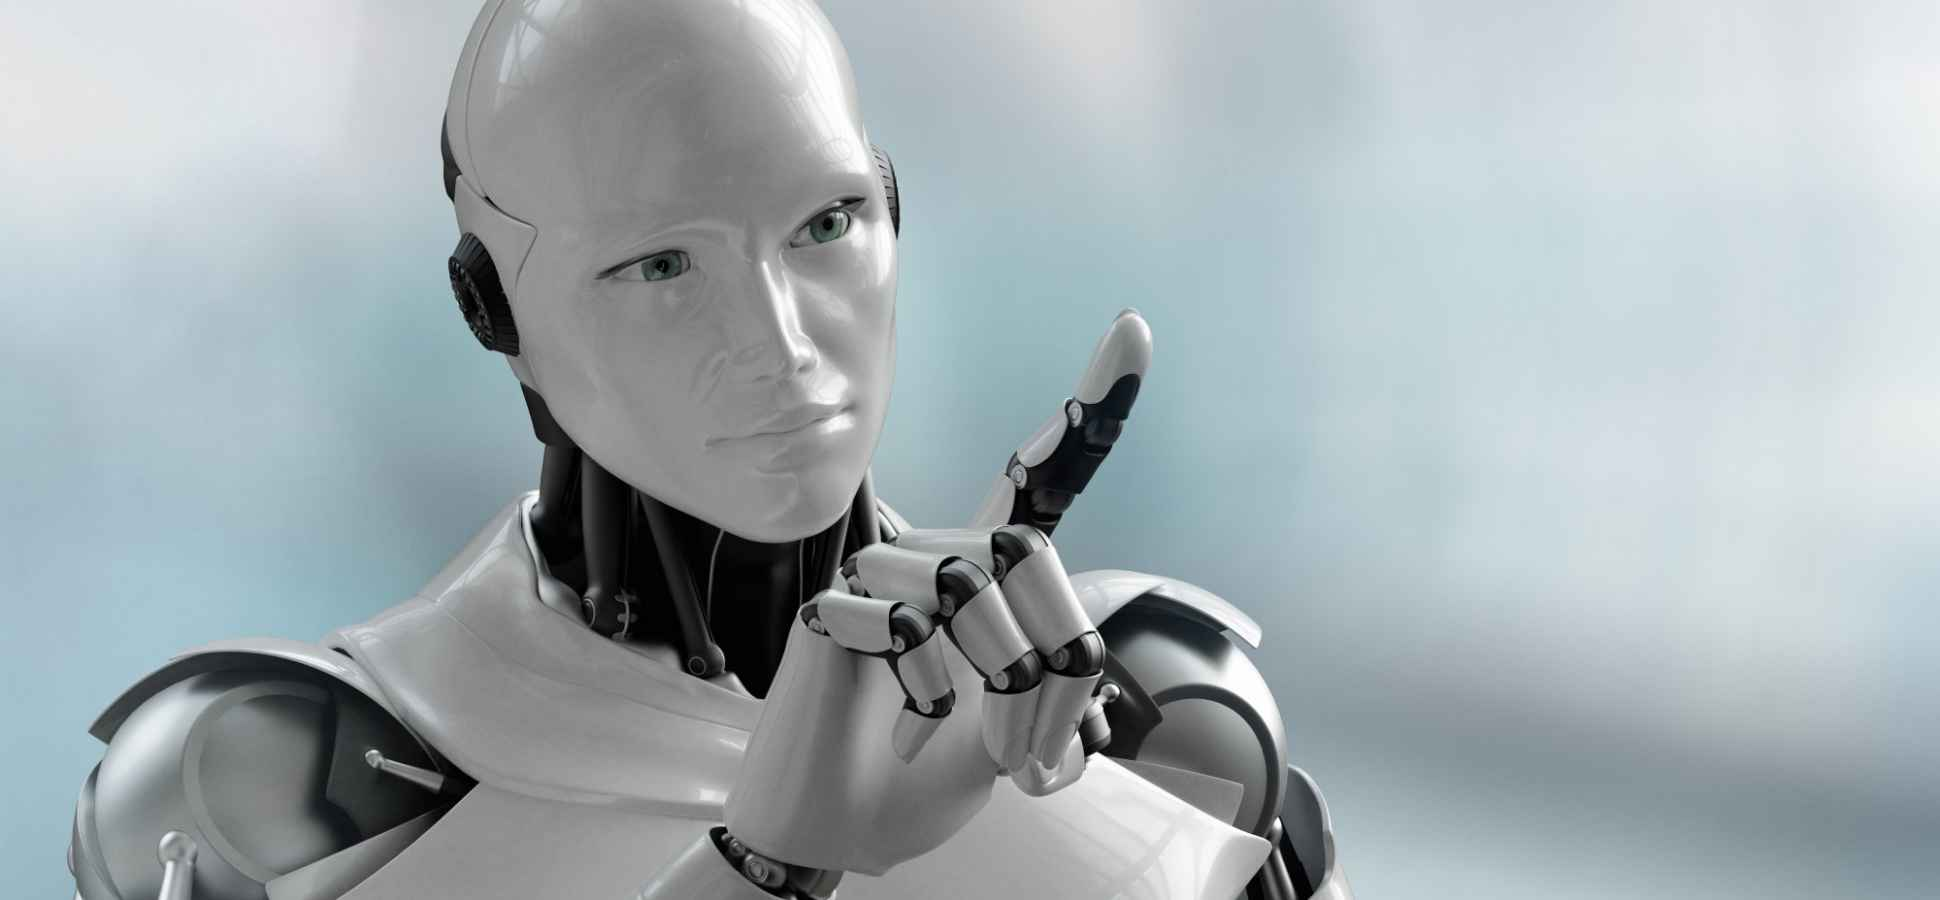 Superhuman Artificial Intelligence Is Coming. Here's What You Need to Know